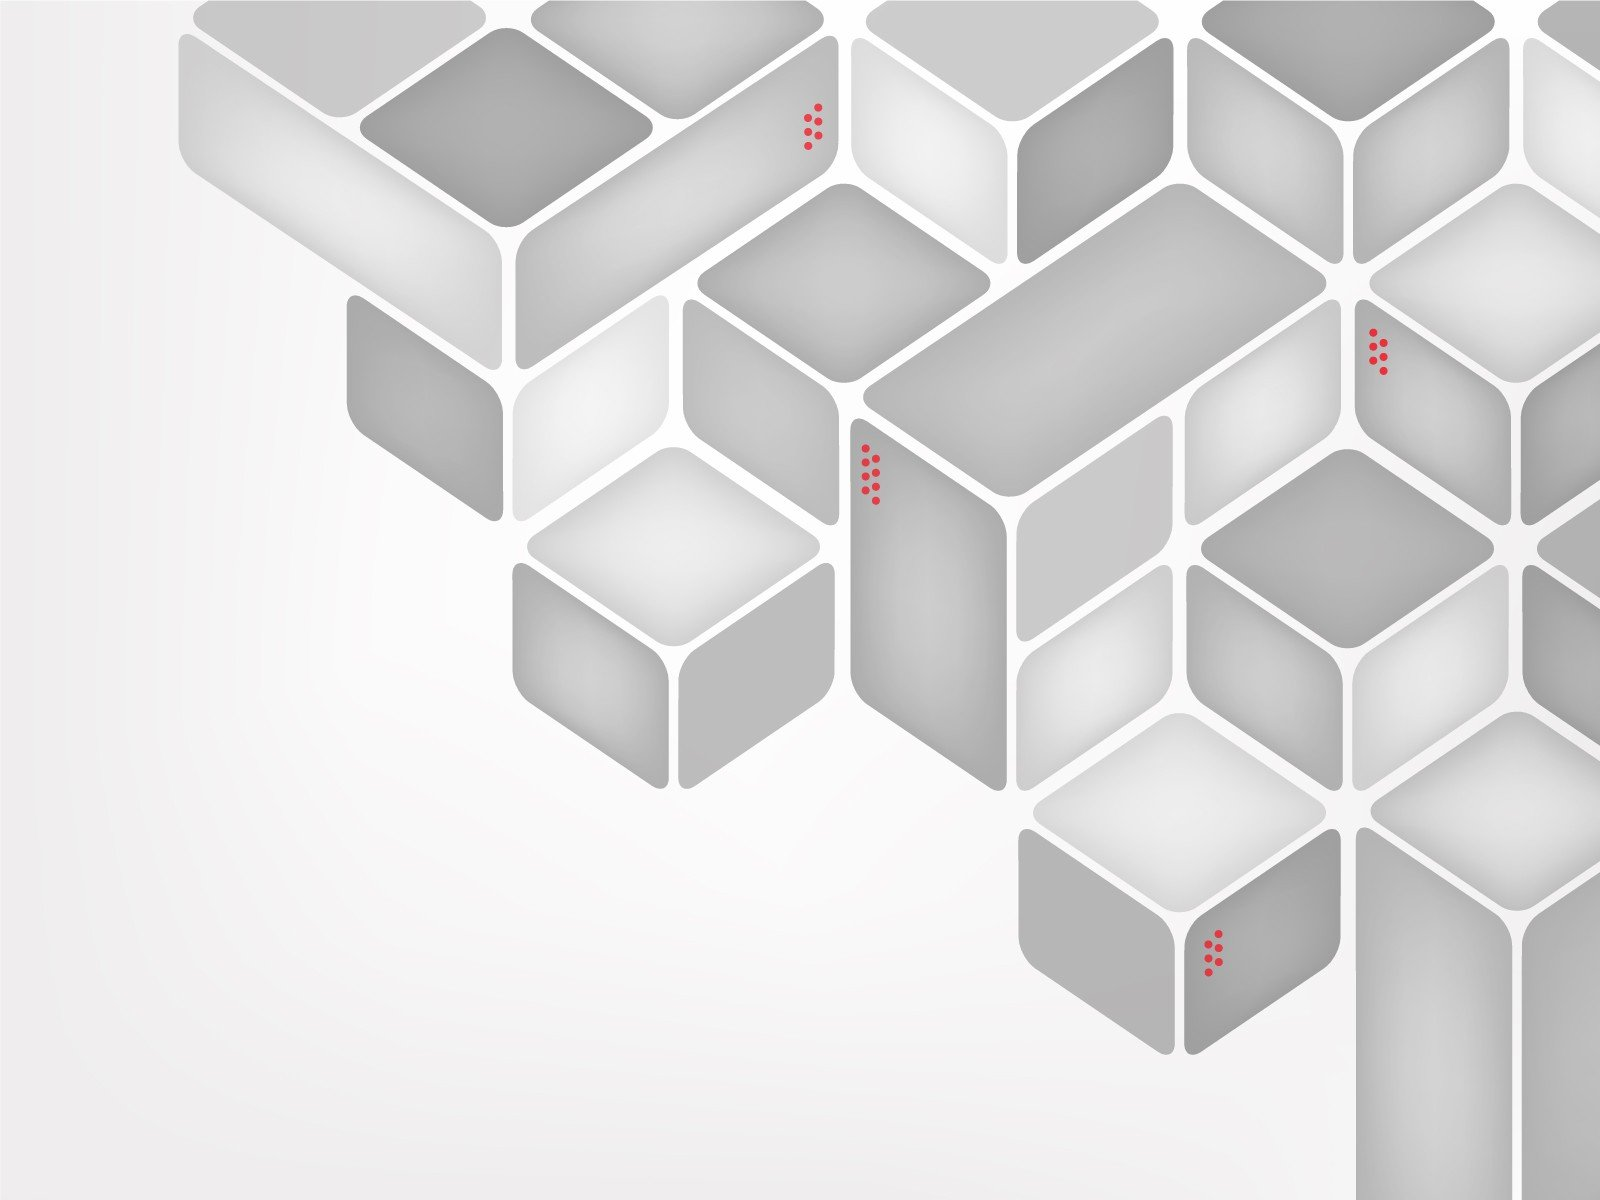 White Cubes Wallpaper Abstract White Grayscale Cubes